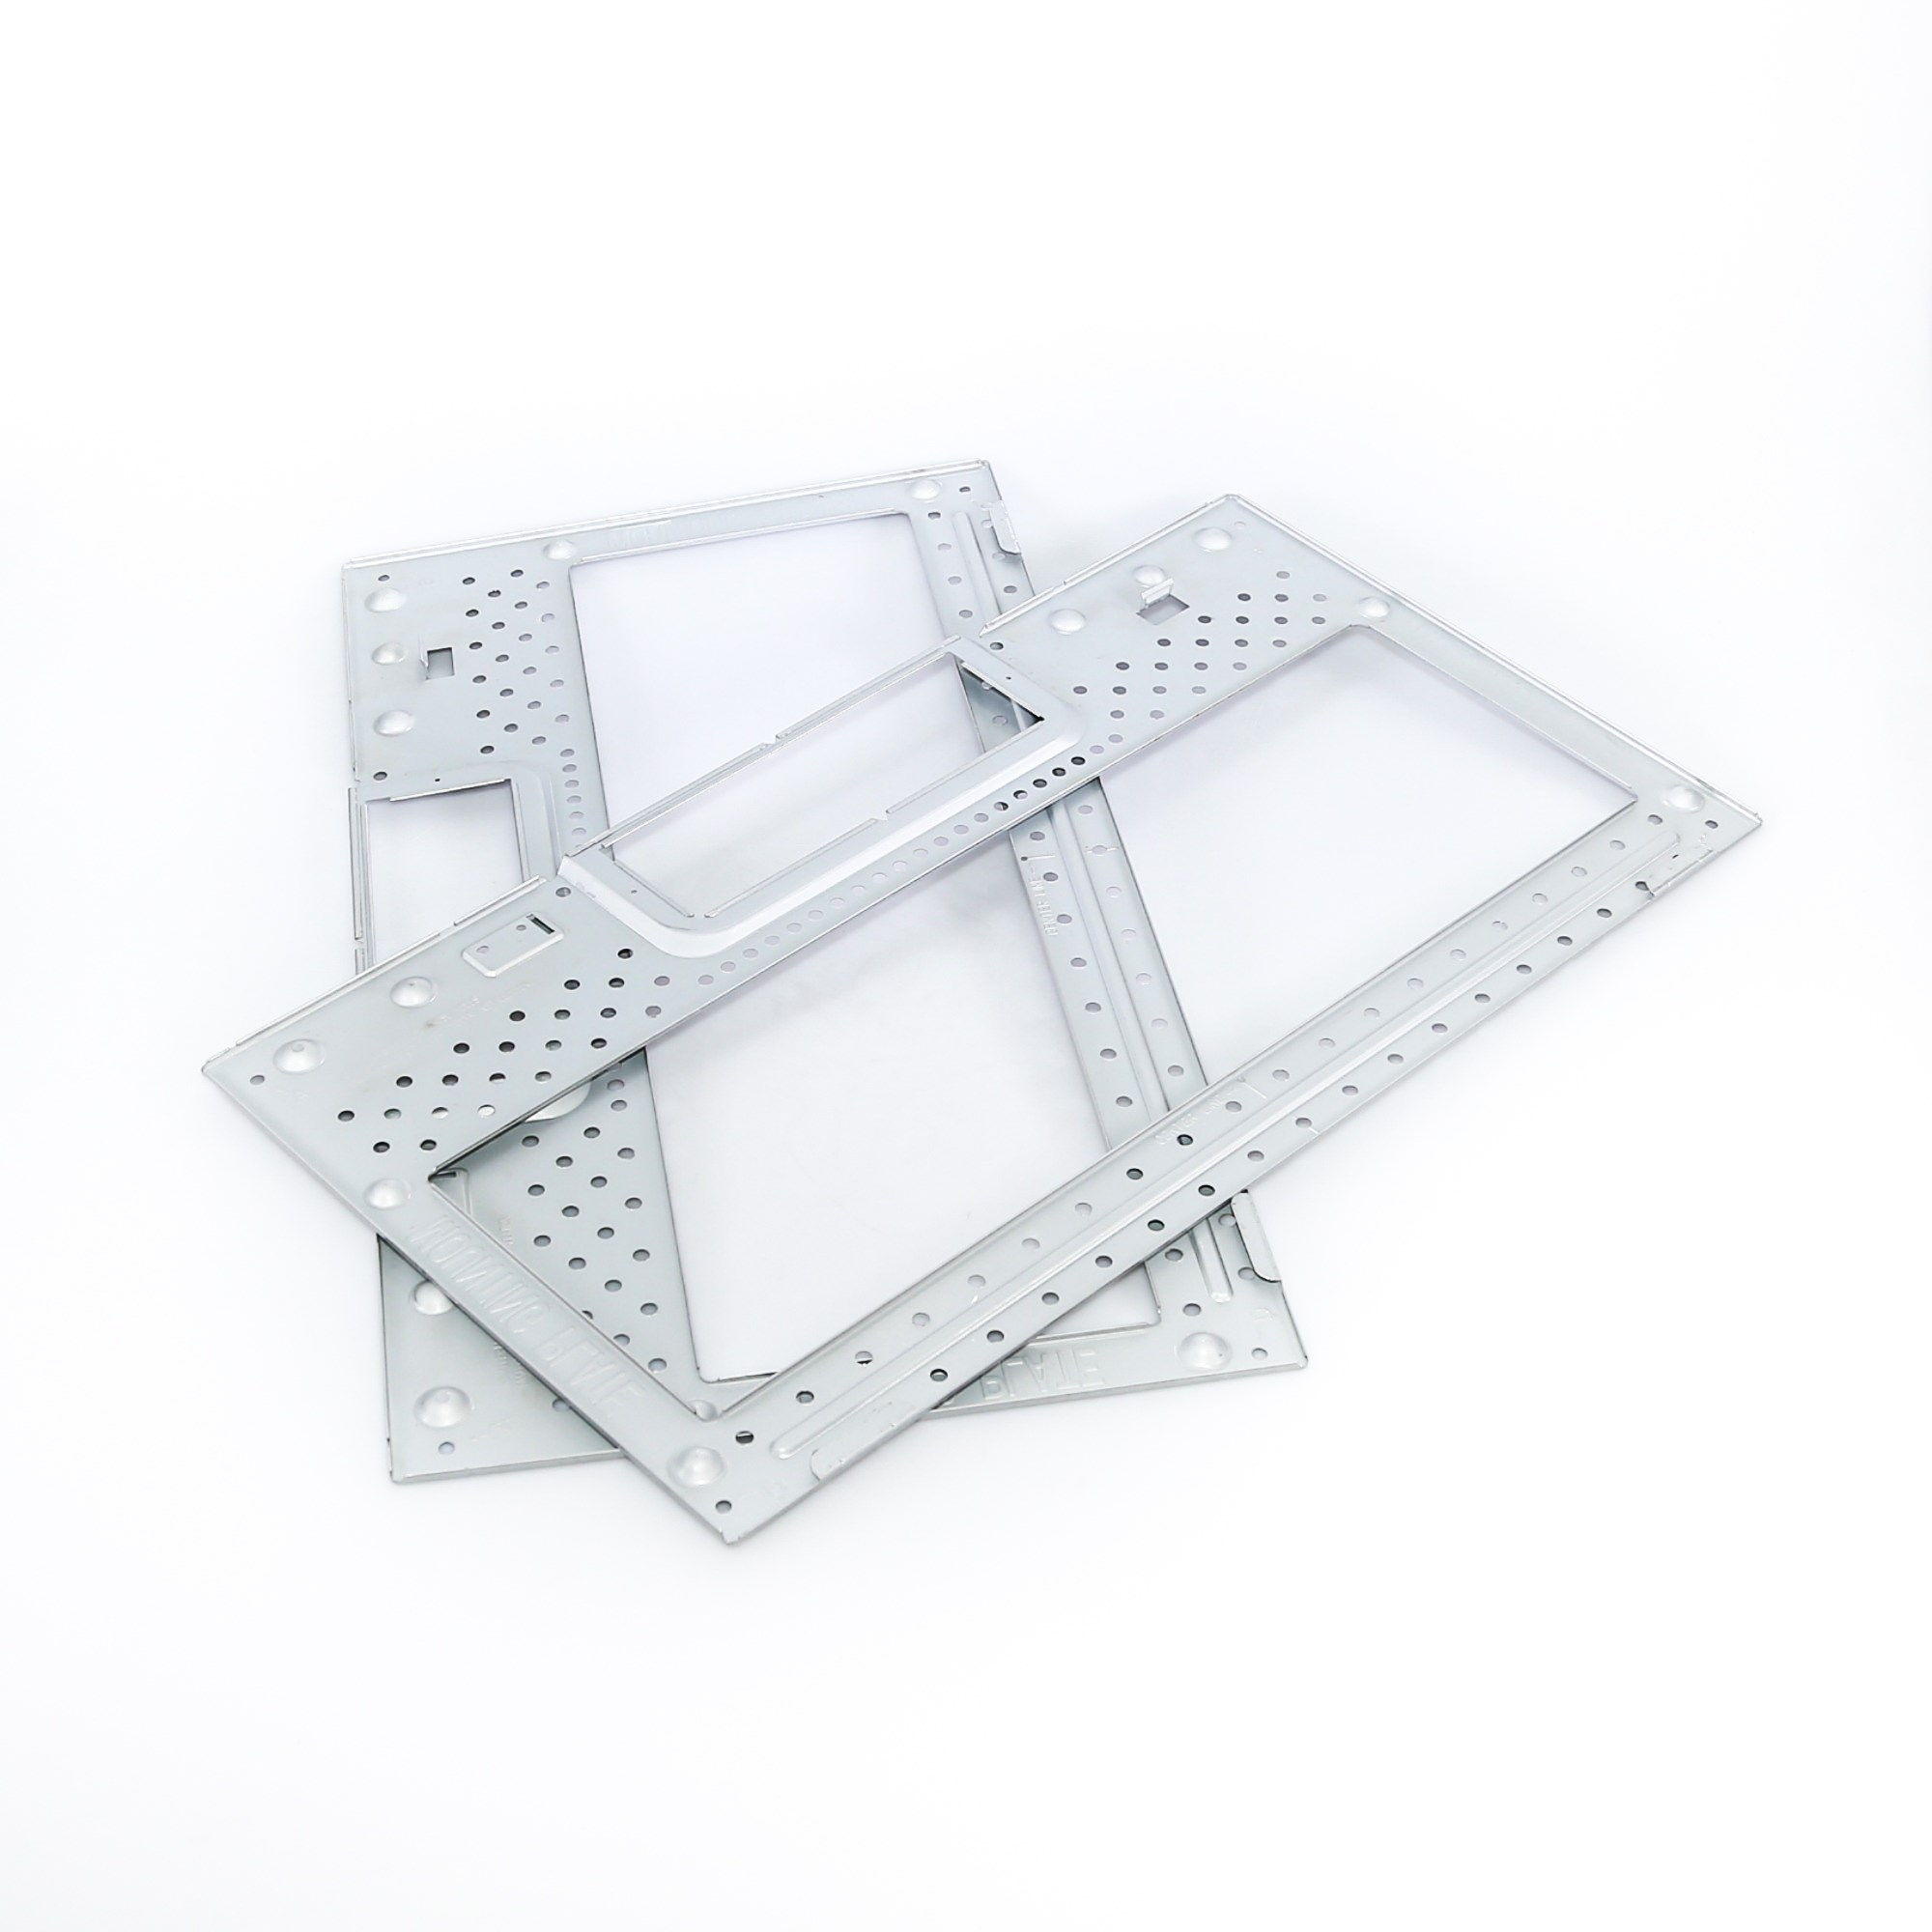 WP8206174 For Whirlpool Microwave Mounting Bracket